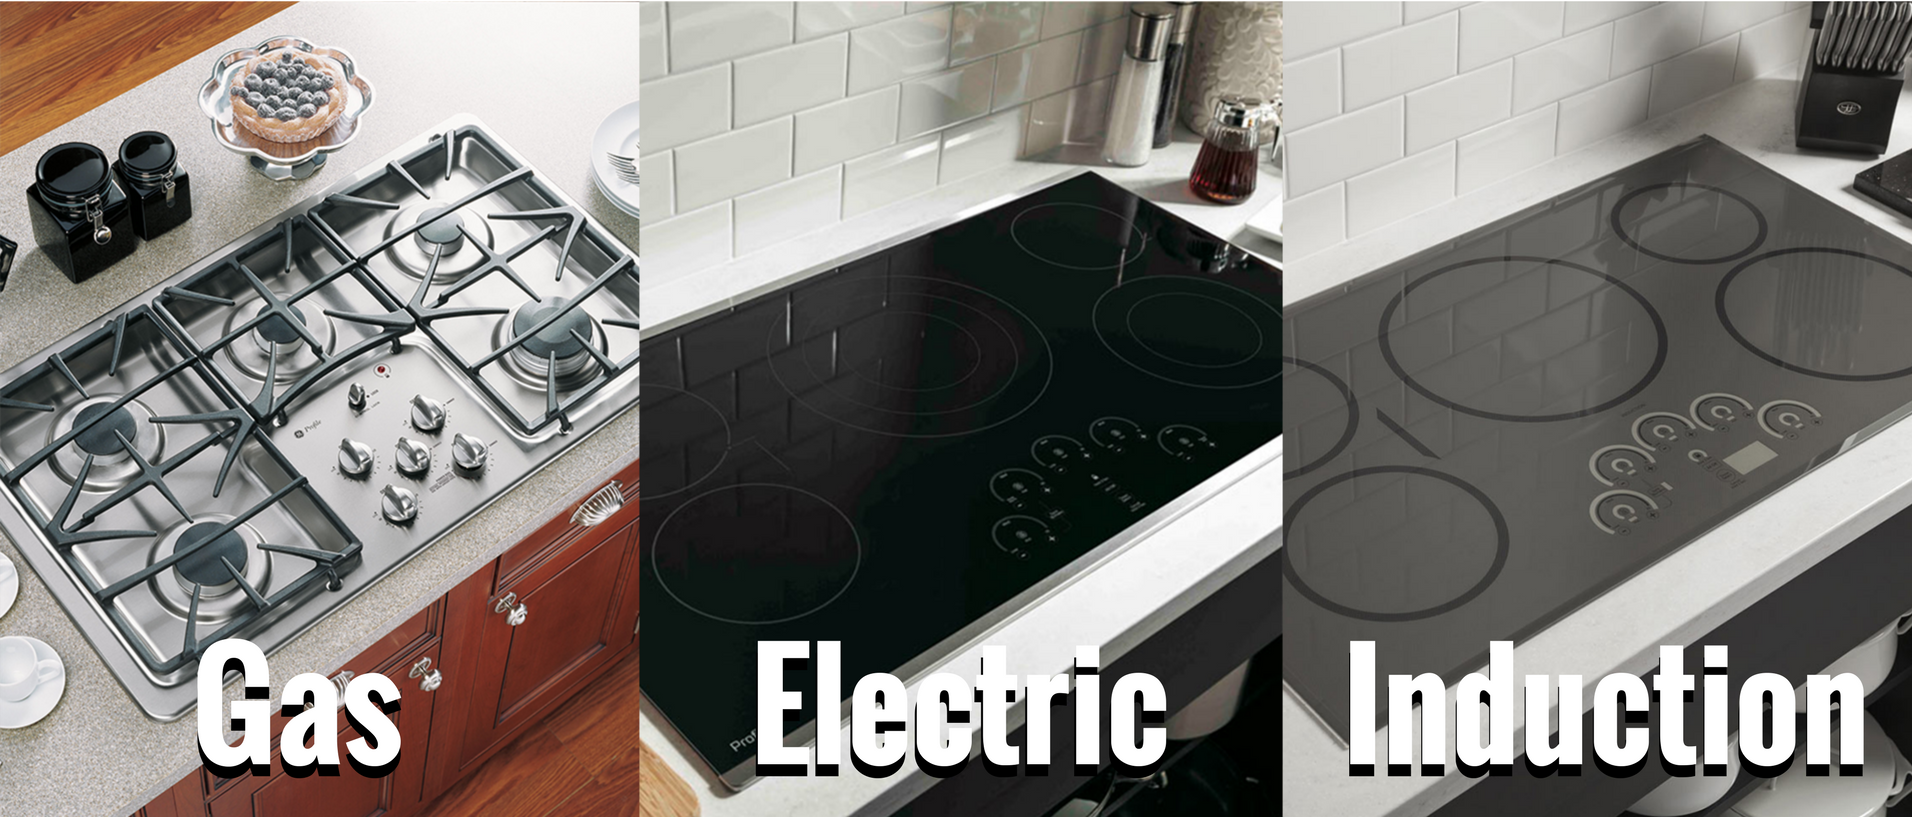 what is the difference between gas vs electric vs induction cooktop ranges appliances connection. Black Bedroom Furniture Sets. Home Design Ideas